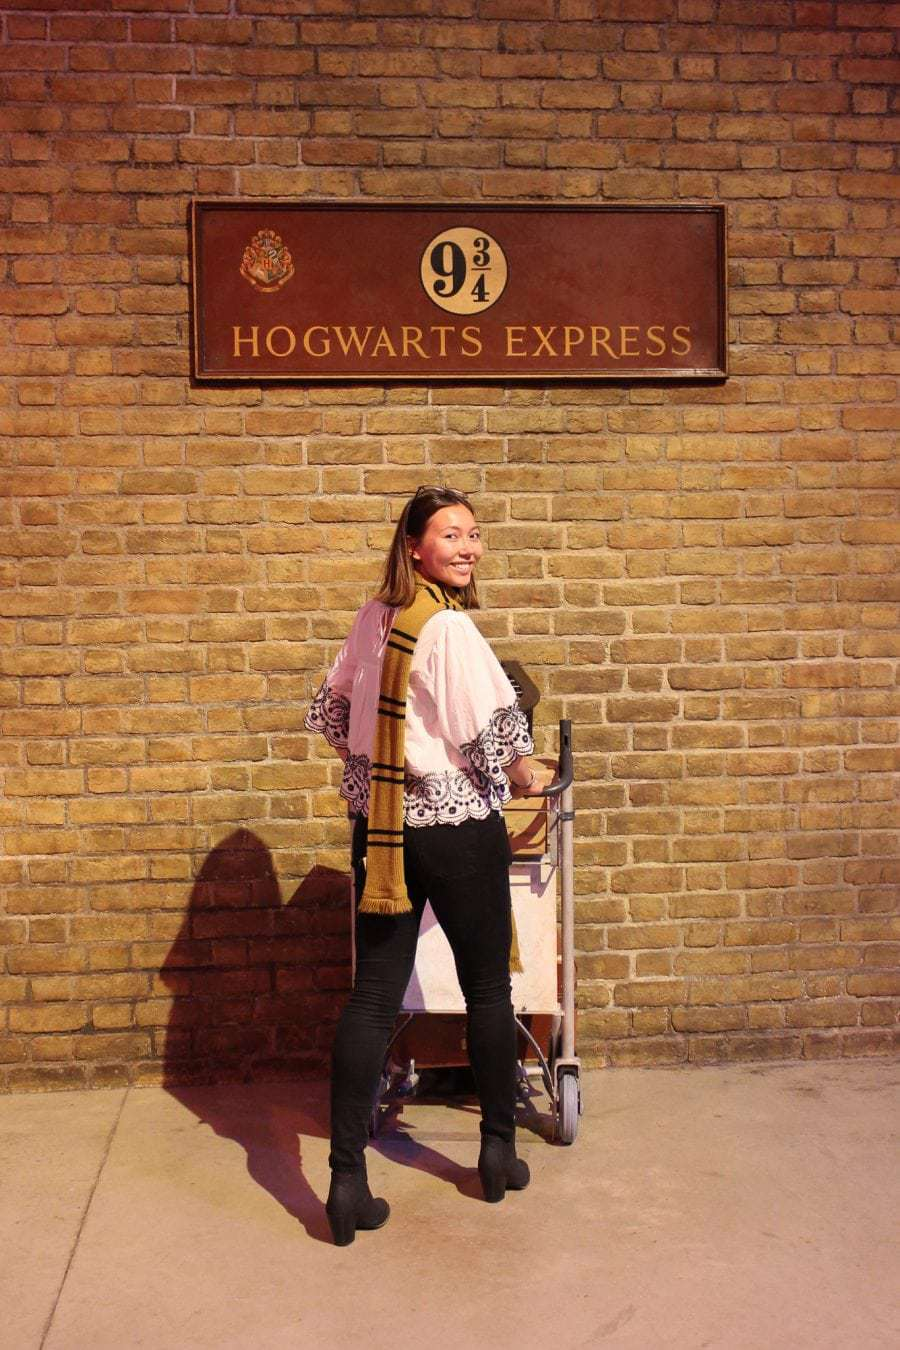 Ultimate Guide to the Warner Bros Harry Potter Studio Tour London! A visit to the Harry Potter studios is a must for any Harry Potter fan. There you will find the real life Harry Potter filming locations and you can go on a self-guided tour around the London studios. Expect lots of magical installations as well as the chance to try some butterbeer! #whatshotblog #harrypotter #harrypotterbooks #harrypotterfan #warnerbros #traveltips